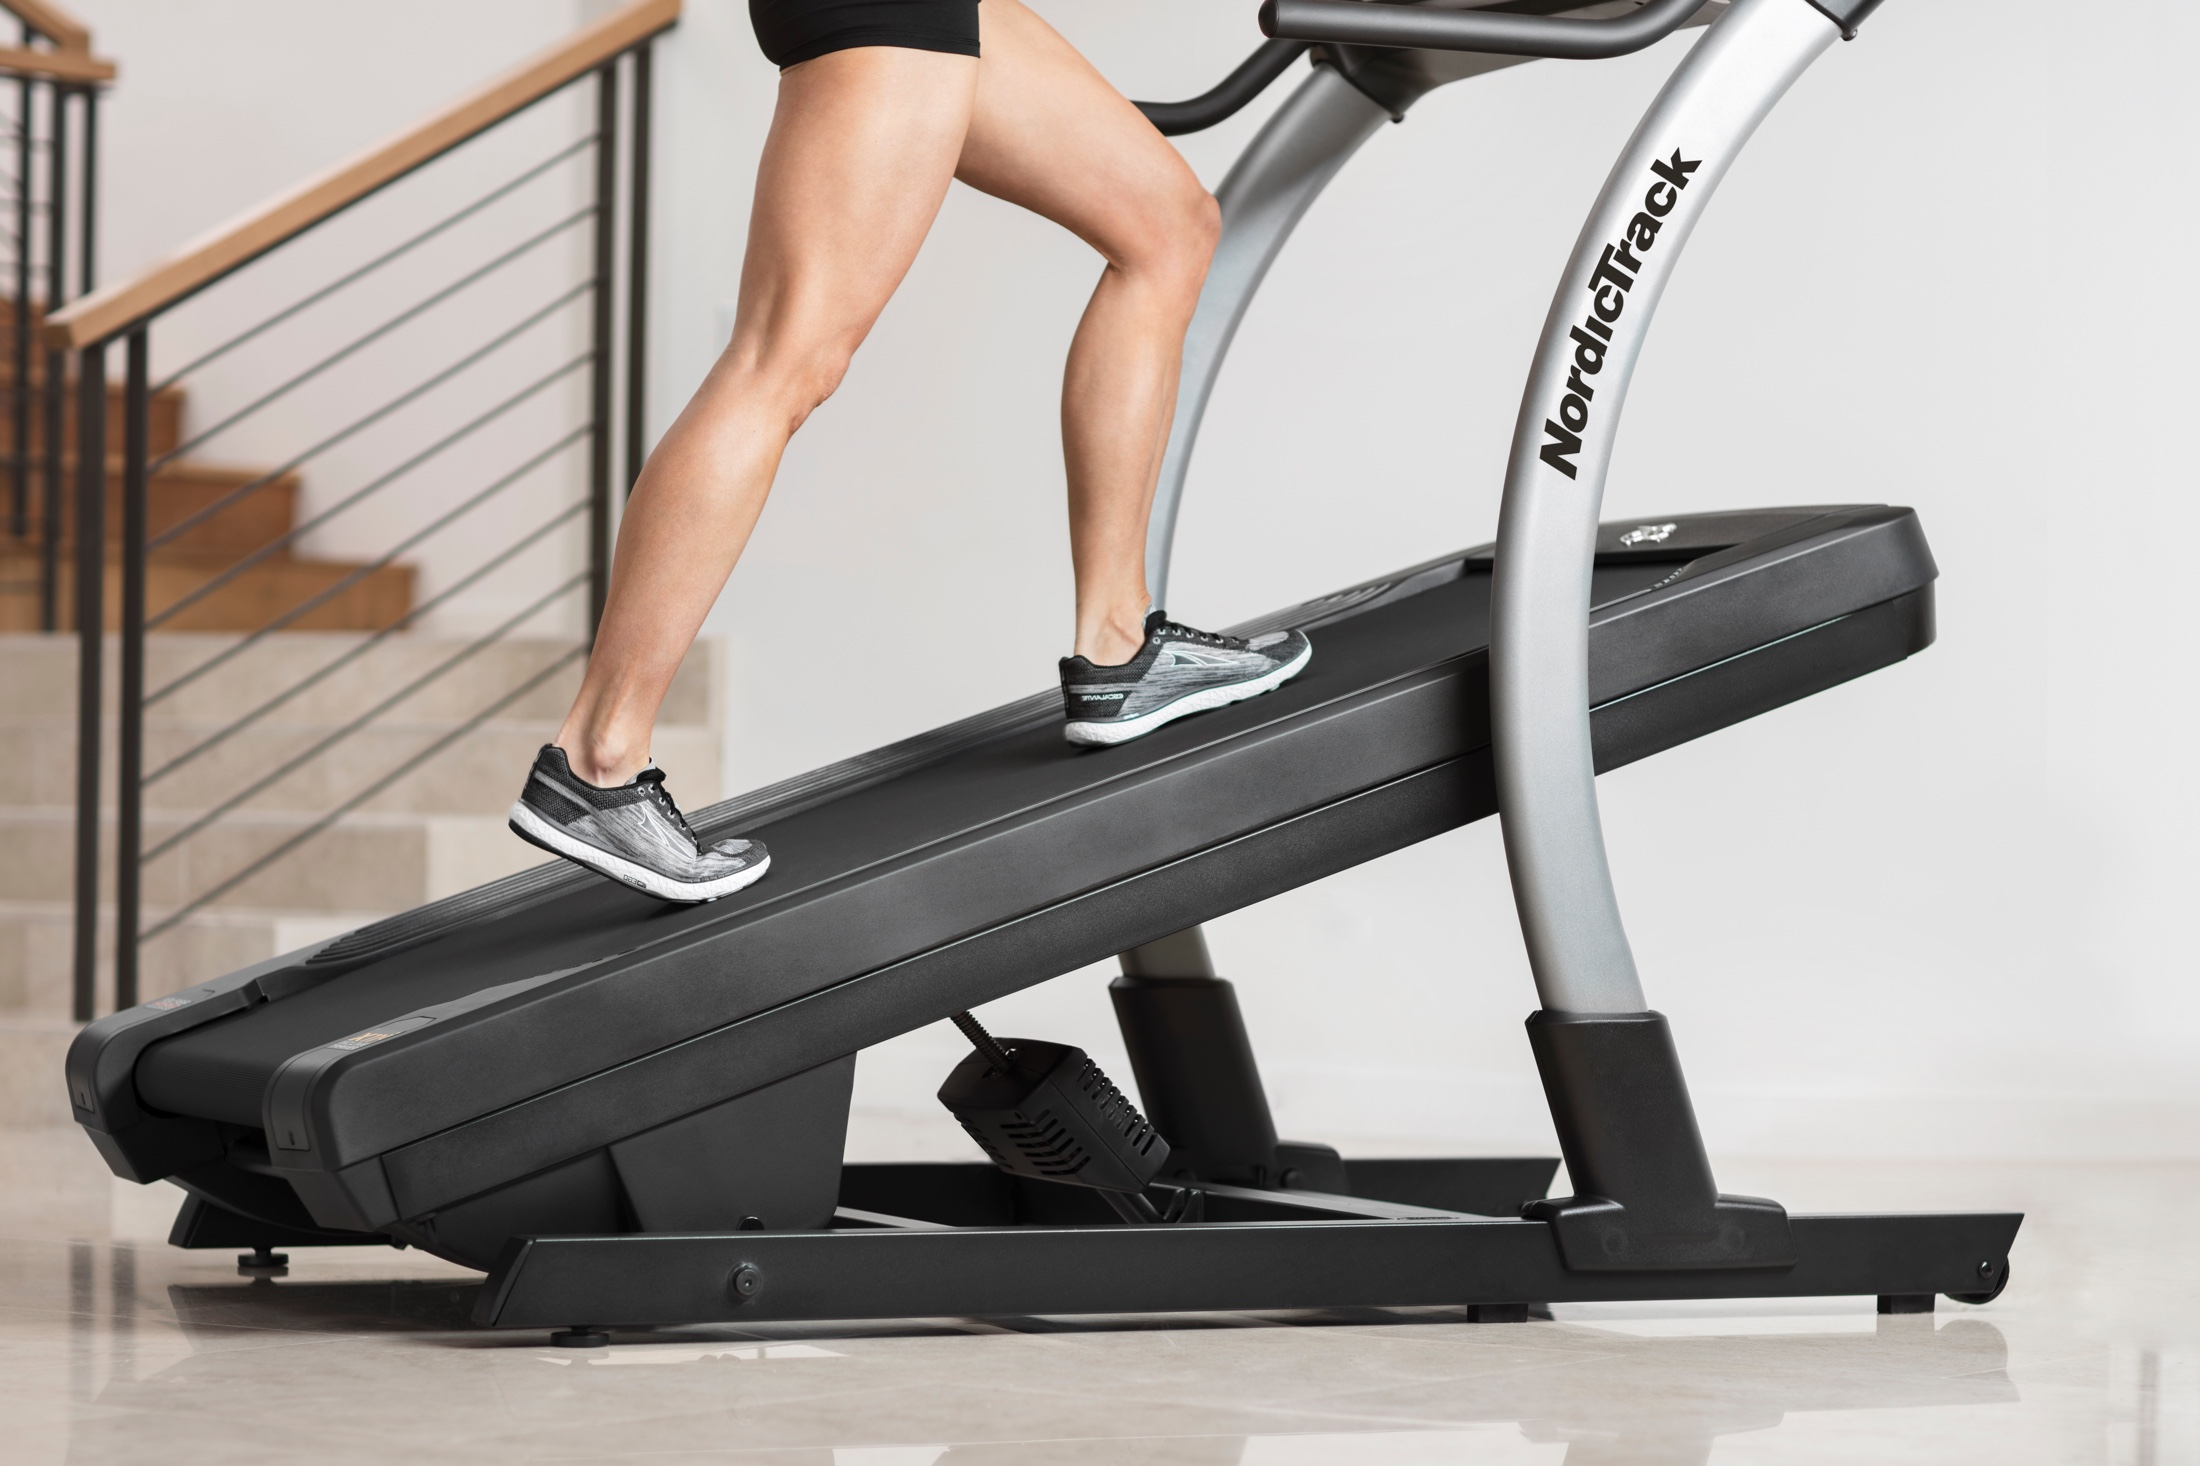 NordicTrack X11i Incline Trainer gallery image 6